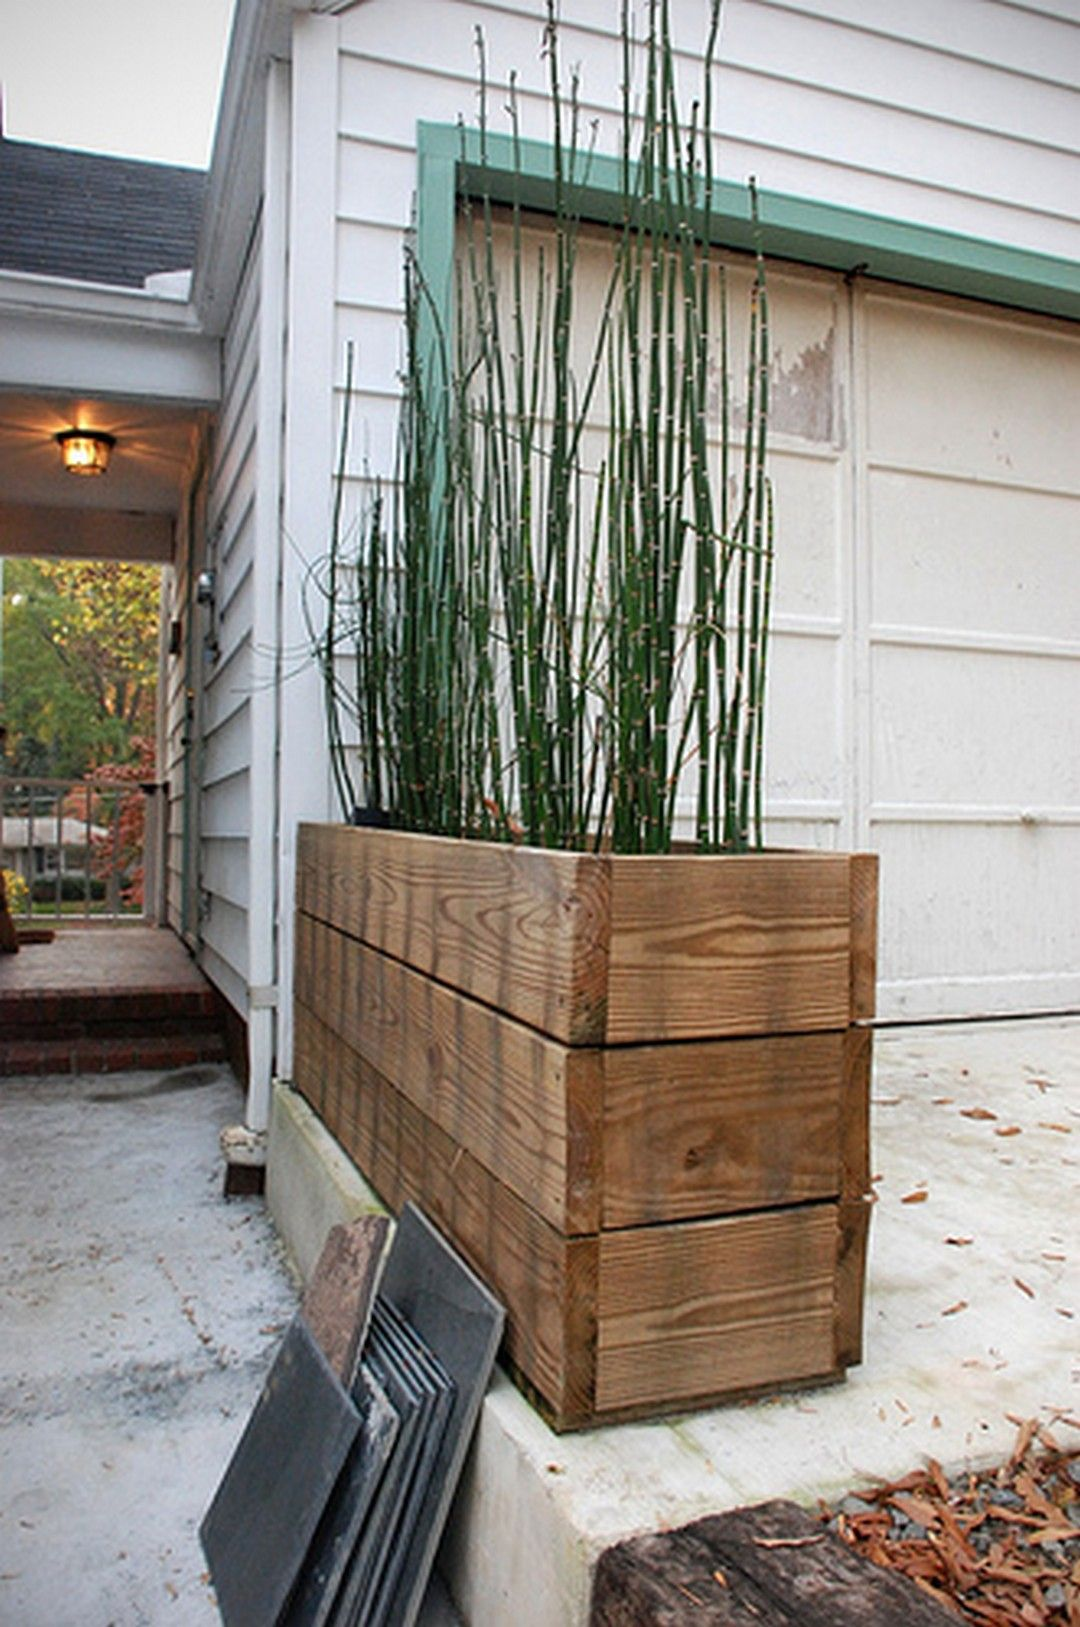 Diy Rustic Wood Planter Box Ideas For Your Amazing Garden 15 Garden Planter Boxes Diy Planter Box Wood Planters